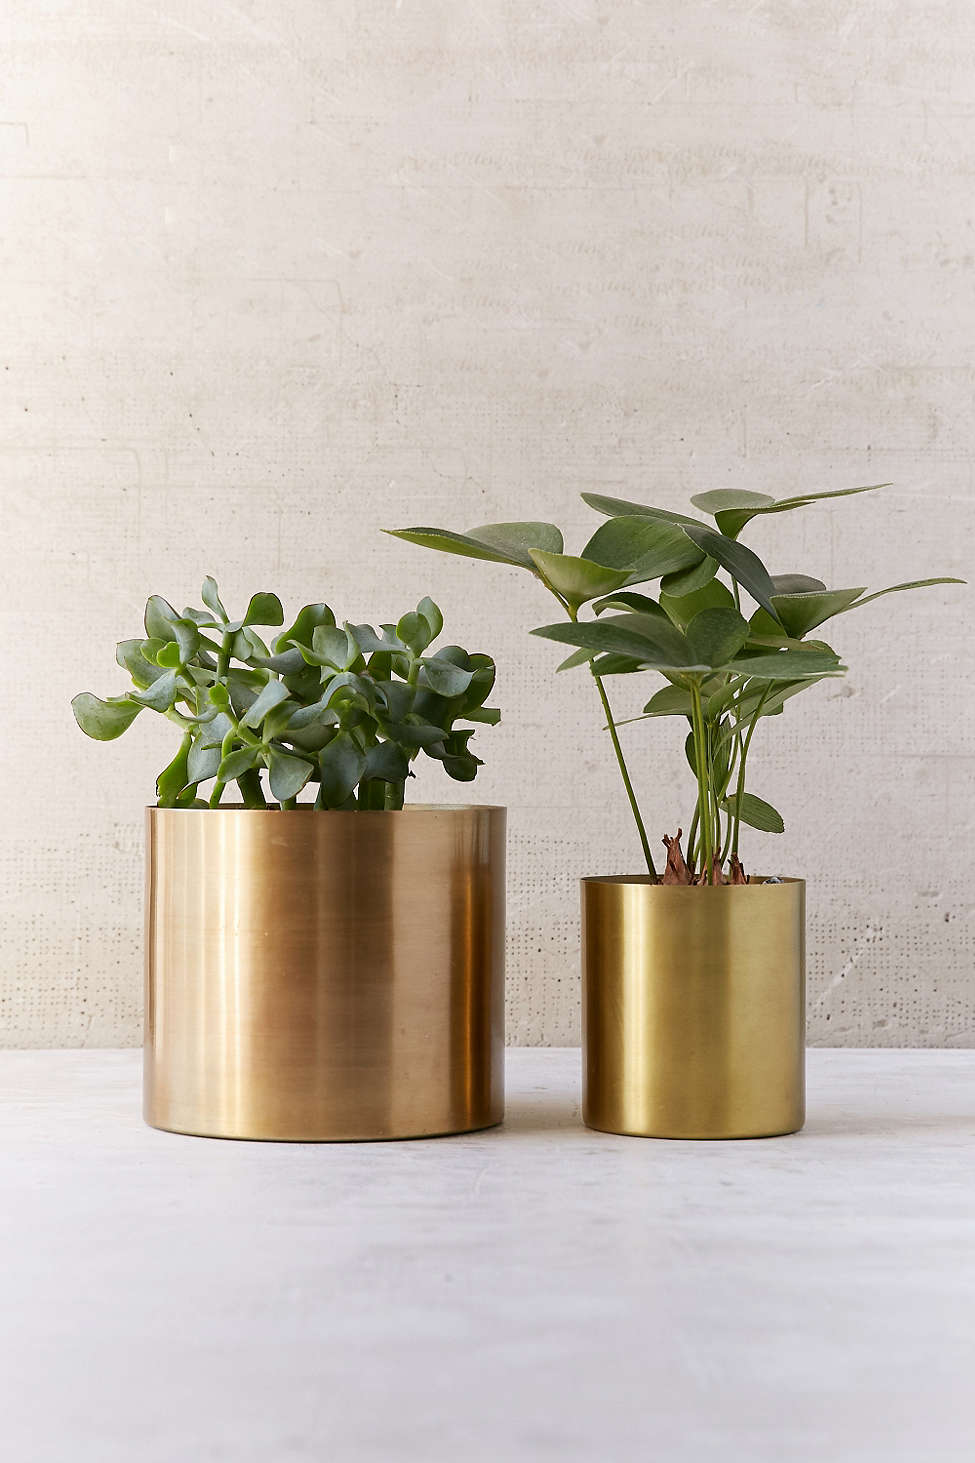 Metal planters from Urban Outfitters